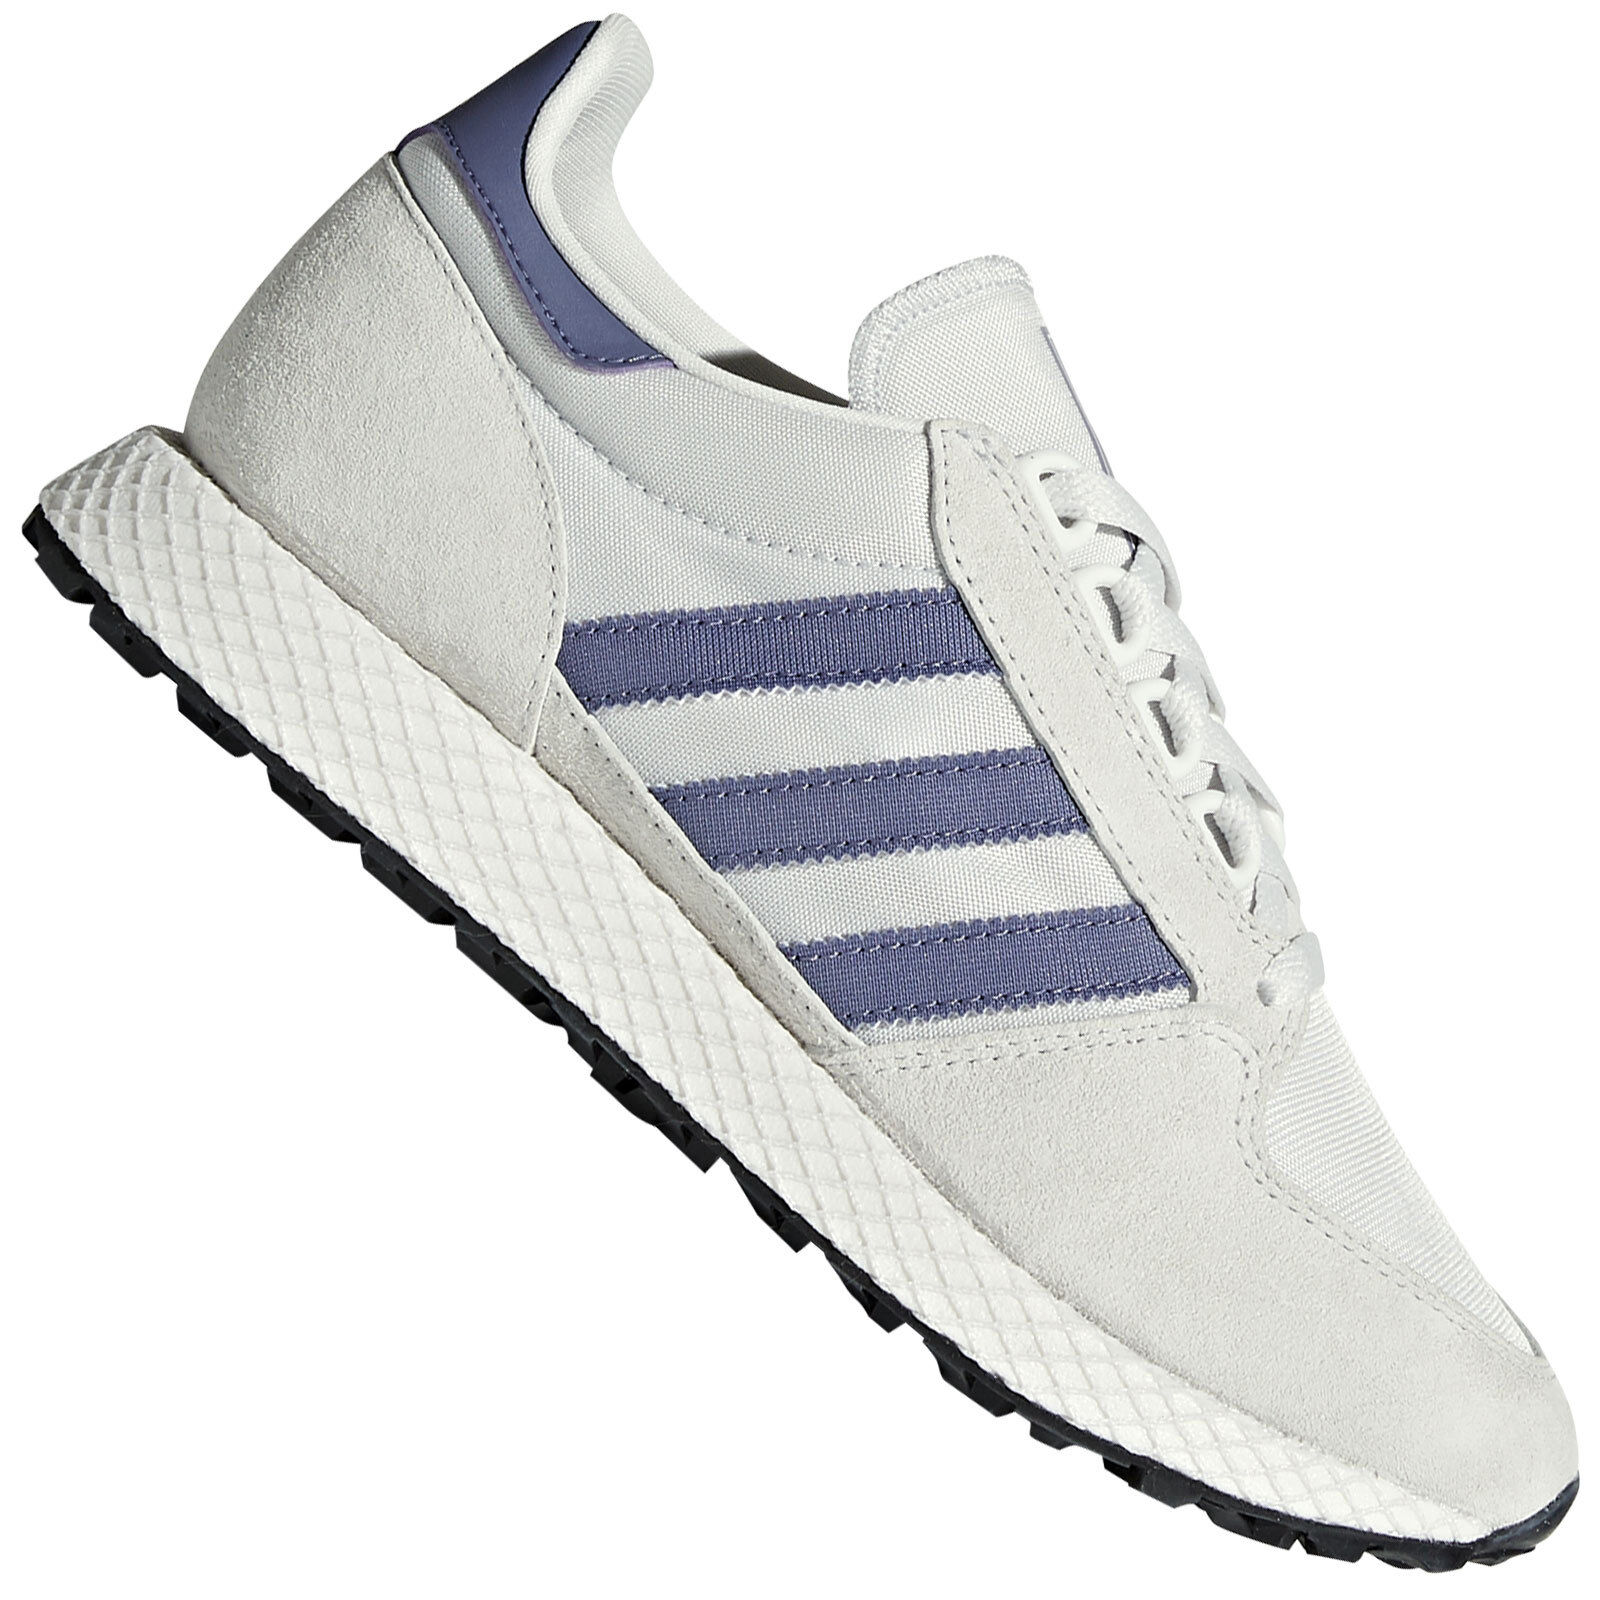 buy popular b0369 8dc3e ... ebay adidas originals forest grove baskets de femme bas chaussures  chaussures de baskets sport b3a3b8 91c30